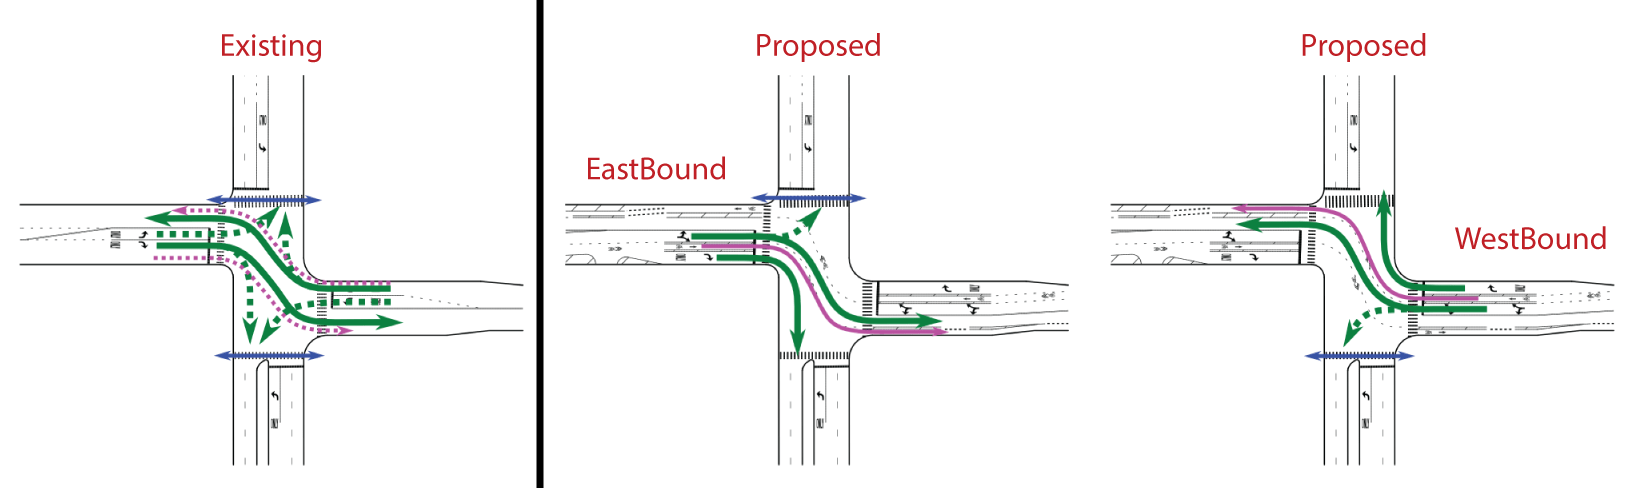 The existing signal timing allows all turns, but a proposed signal timing will separate eastbound and westbound bicycle and vehicle traffic. Image: modified from CDOT